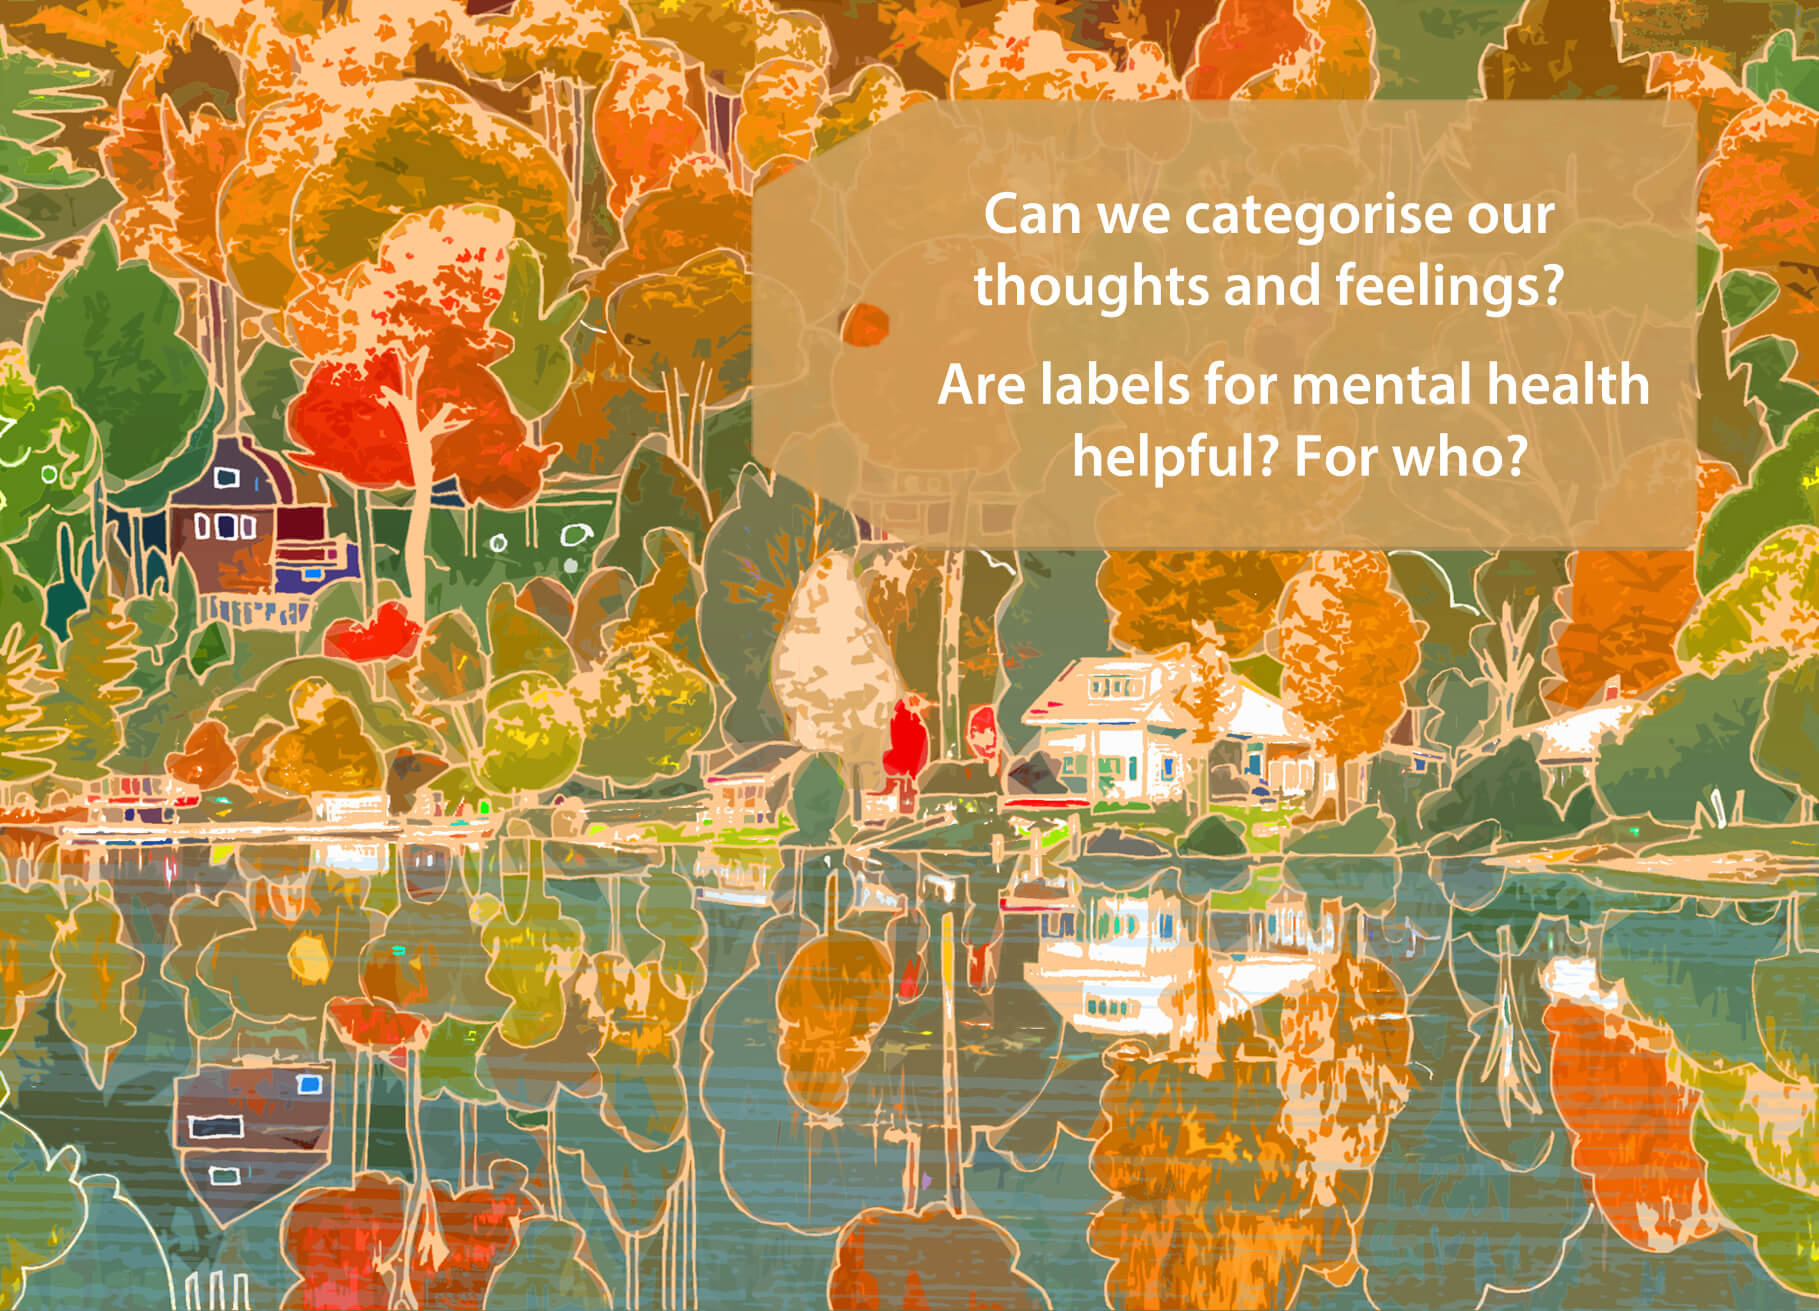 """Postcard of lanscape scene - text reads """"Can we categorise our thoughts and feelings? Are labels for mental health helpful? For who?"""""""